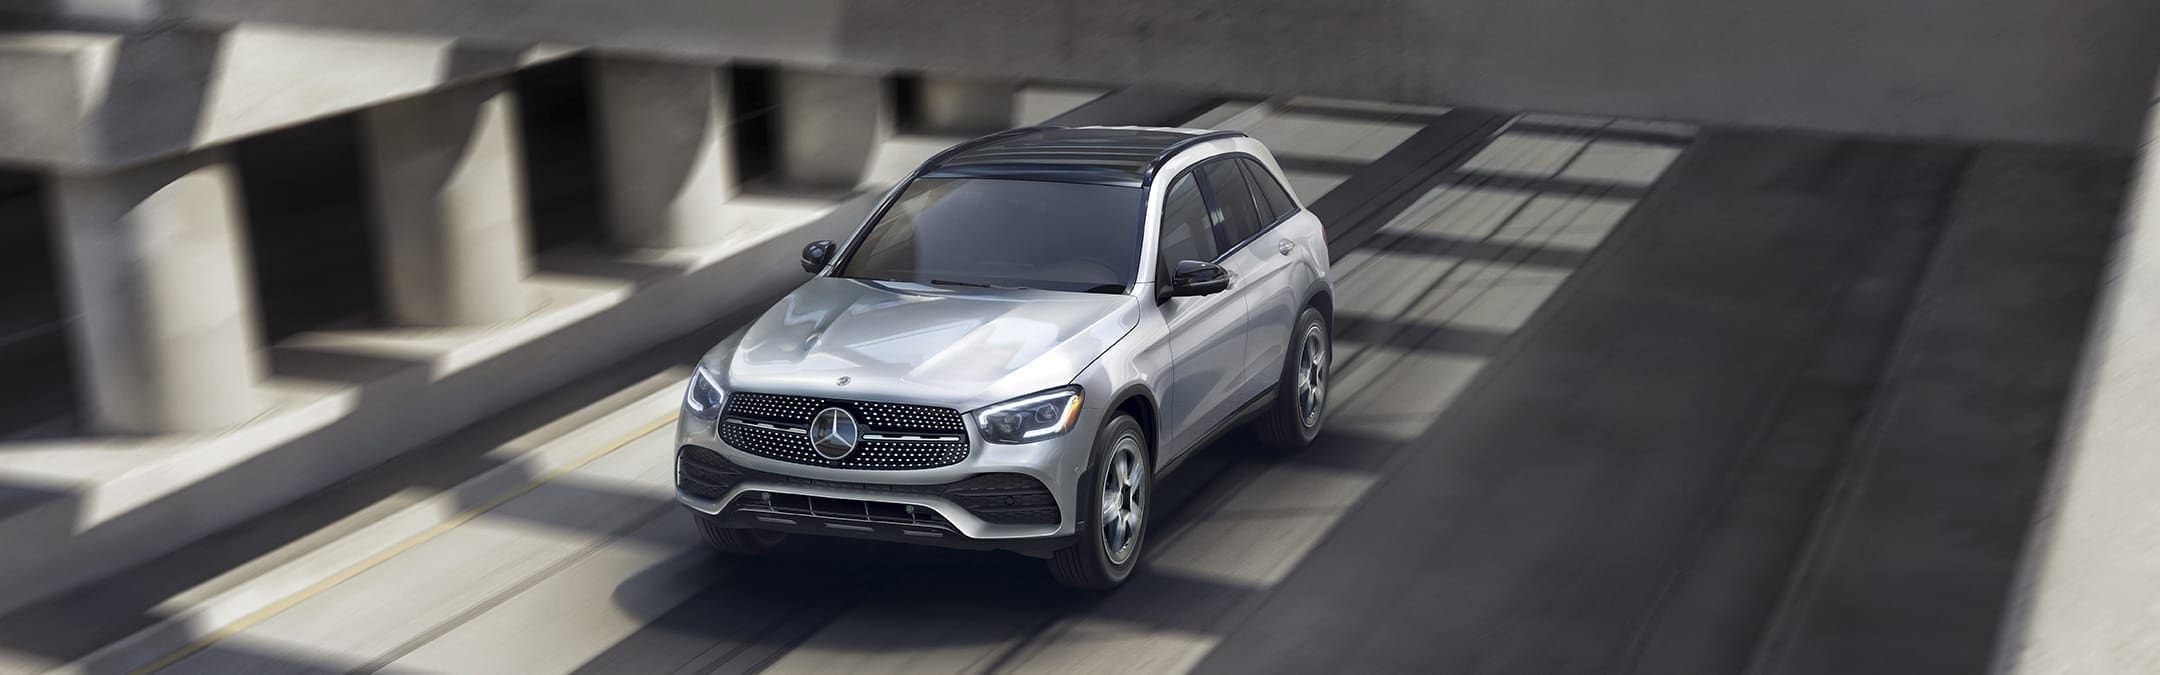 2020 Mercedes Benz Glc Among The Best In Lakeland Fl Put Simply